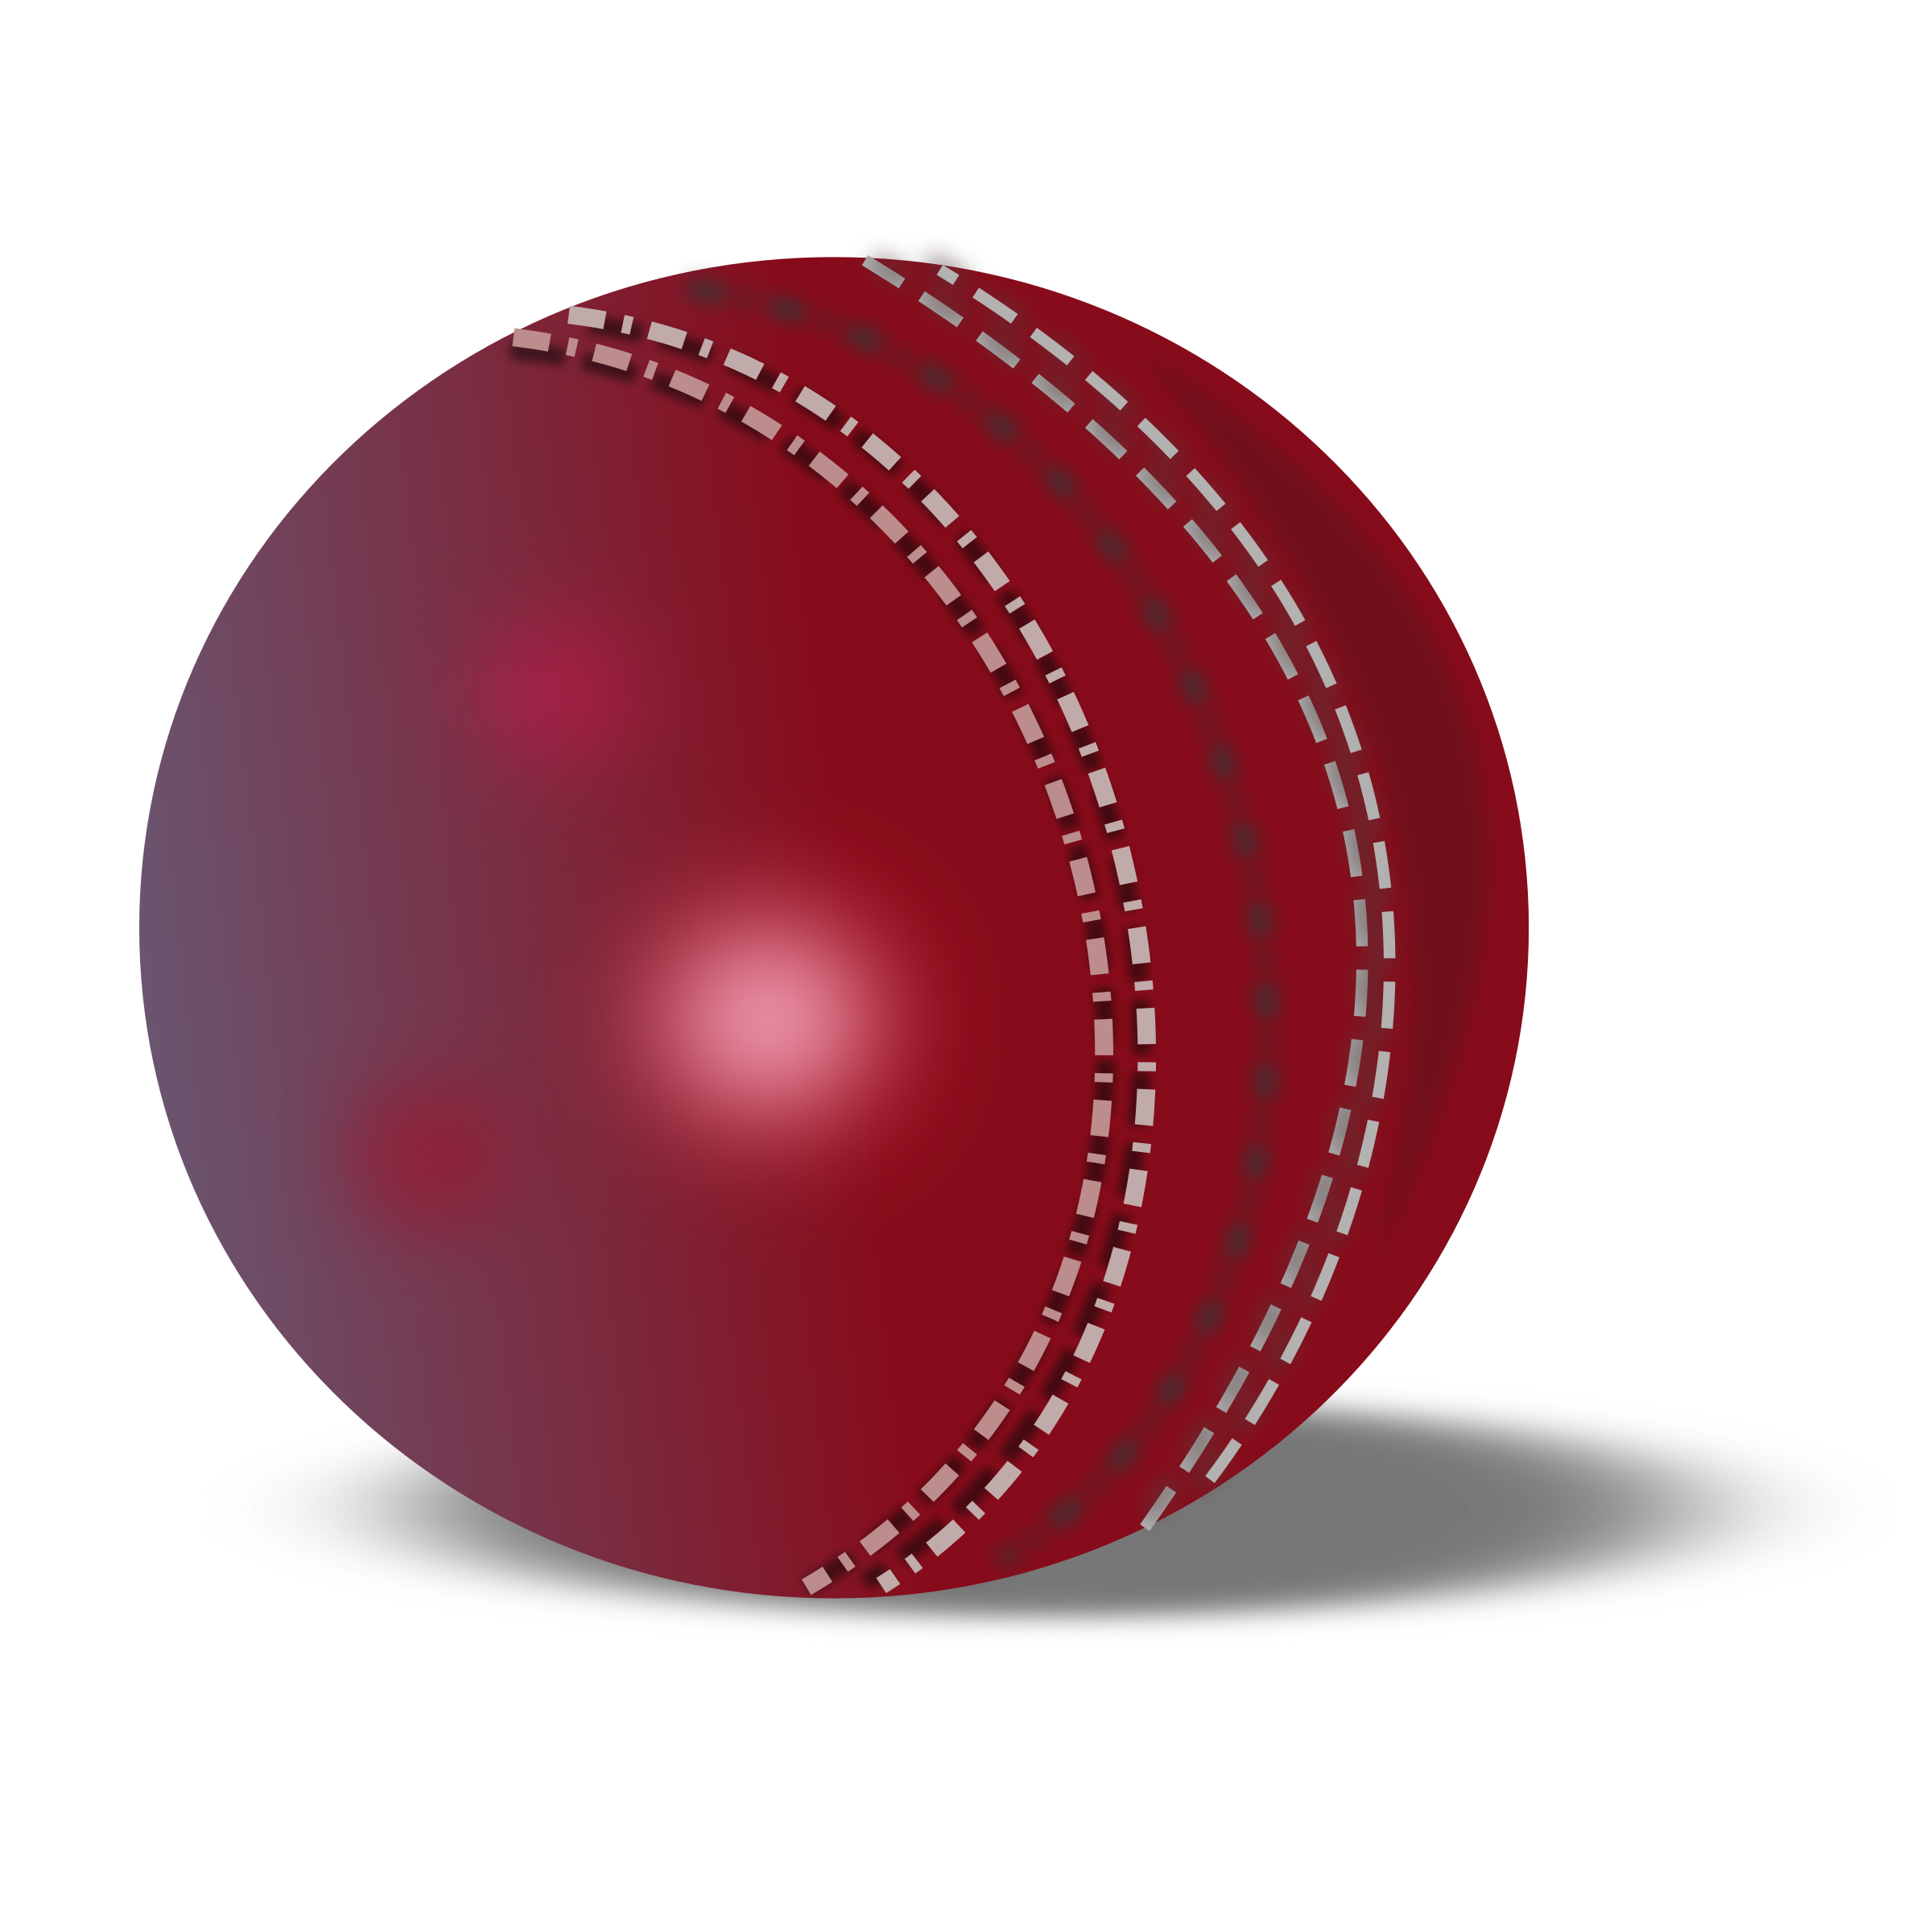 Cricket ball png. Transparent images all file